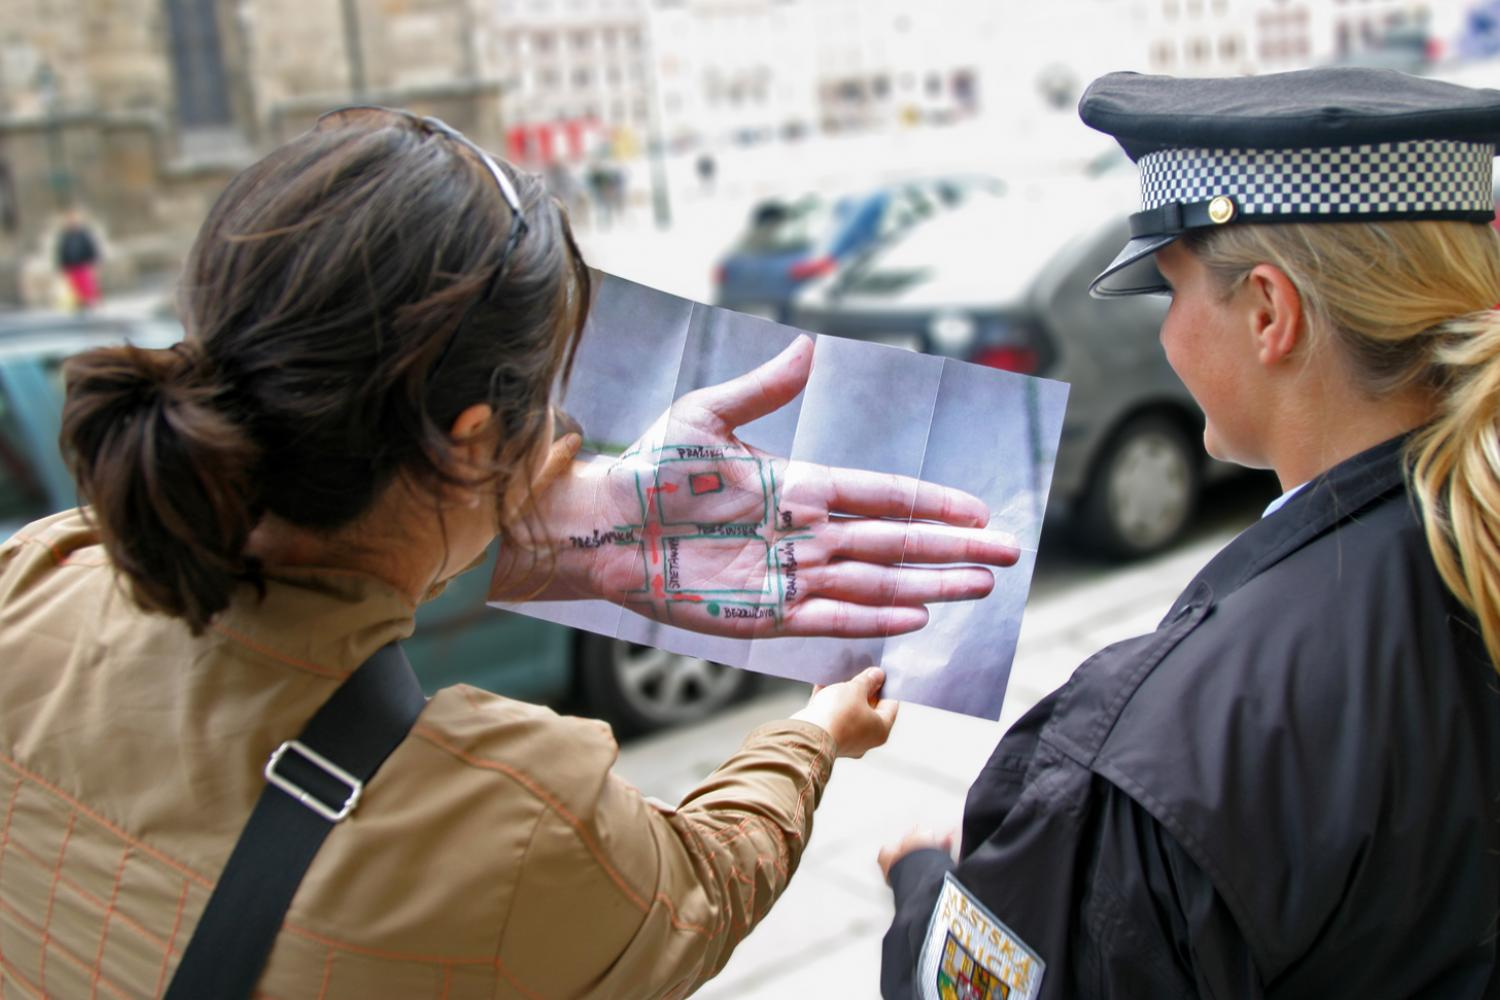 Two people looking at a large photo of a hand with a map drawn on it. - Yumi Janairo Roth - Meta Mapa (Czech Republic)